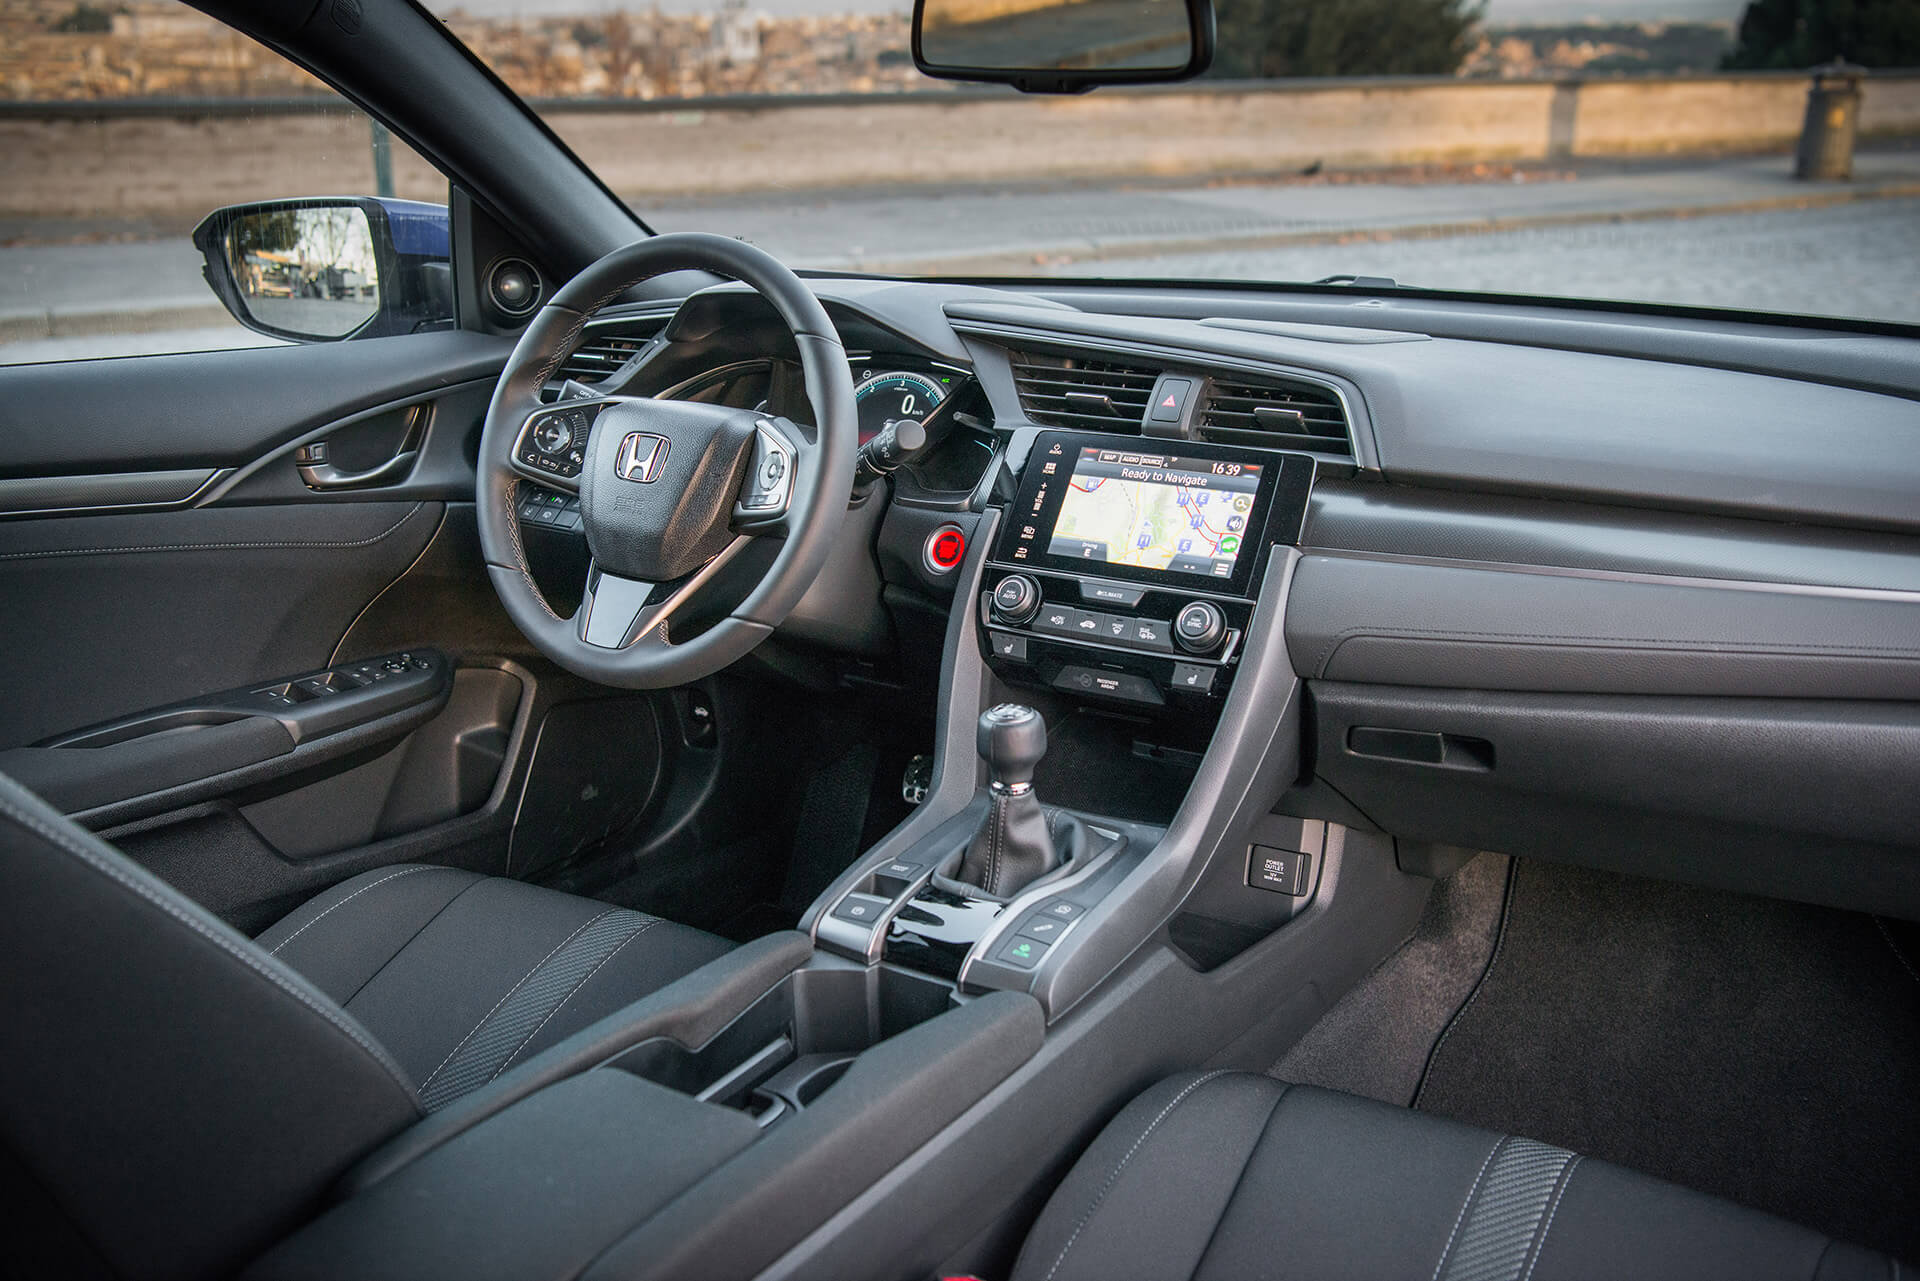 Honda Civic 1.6 i-DTEC — interior